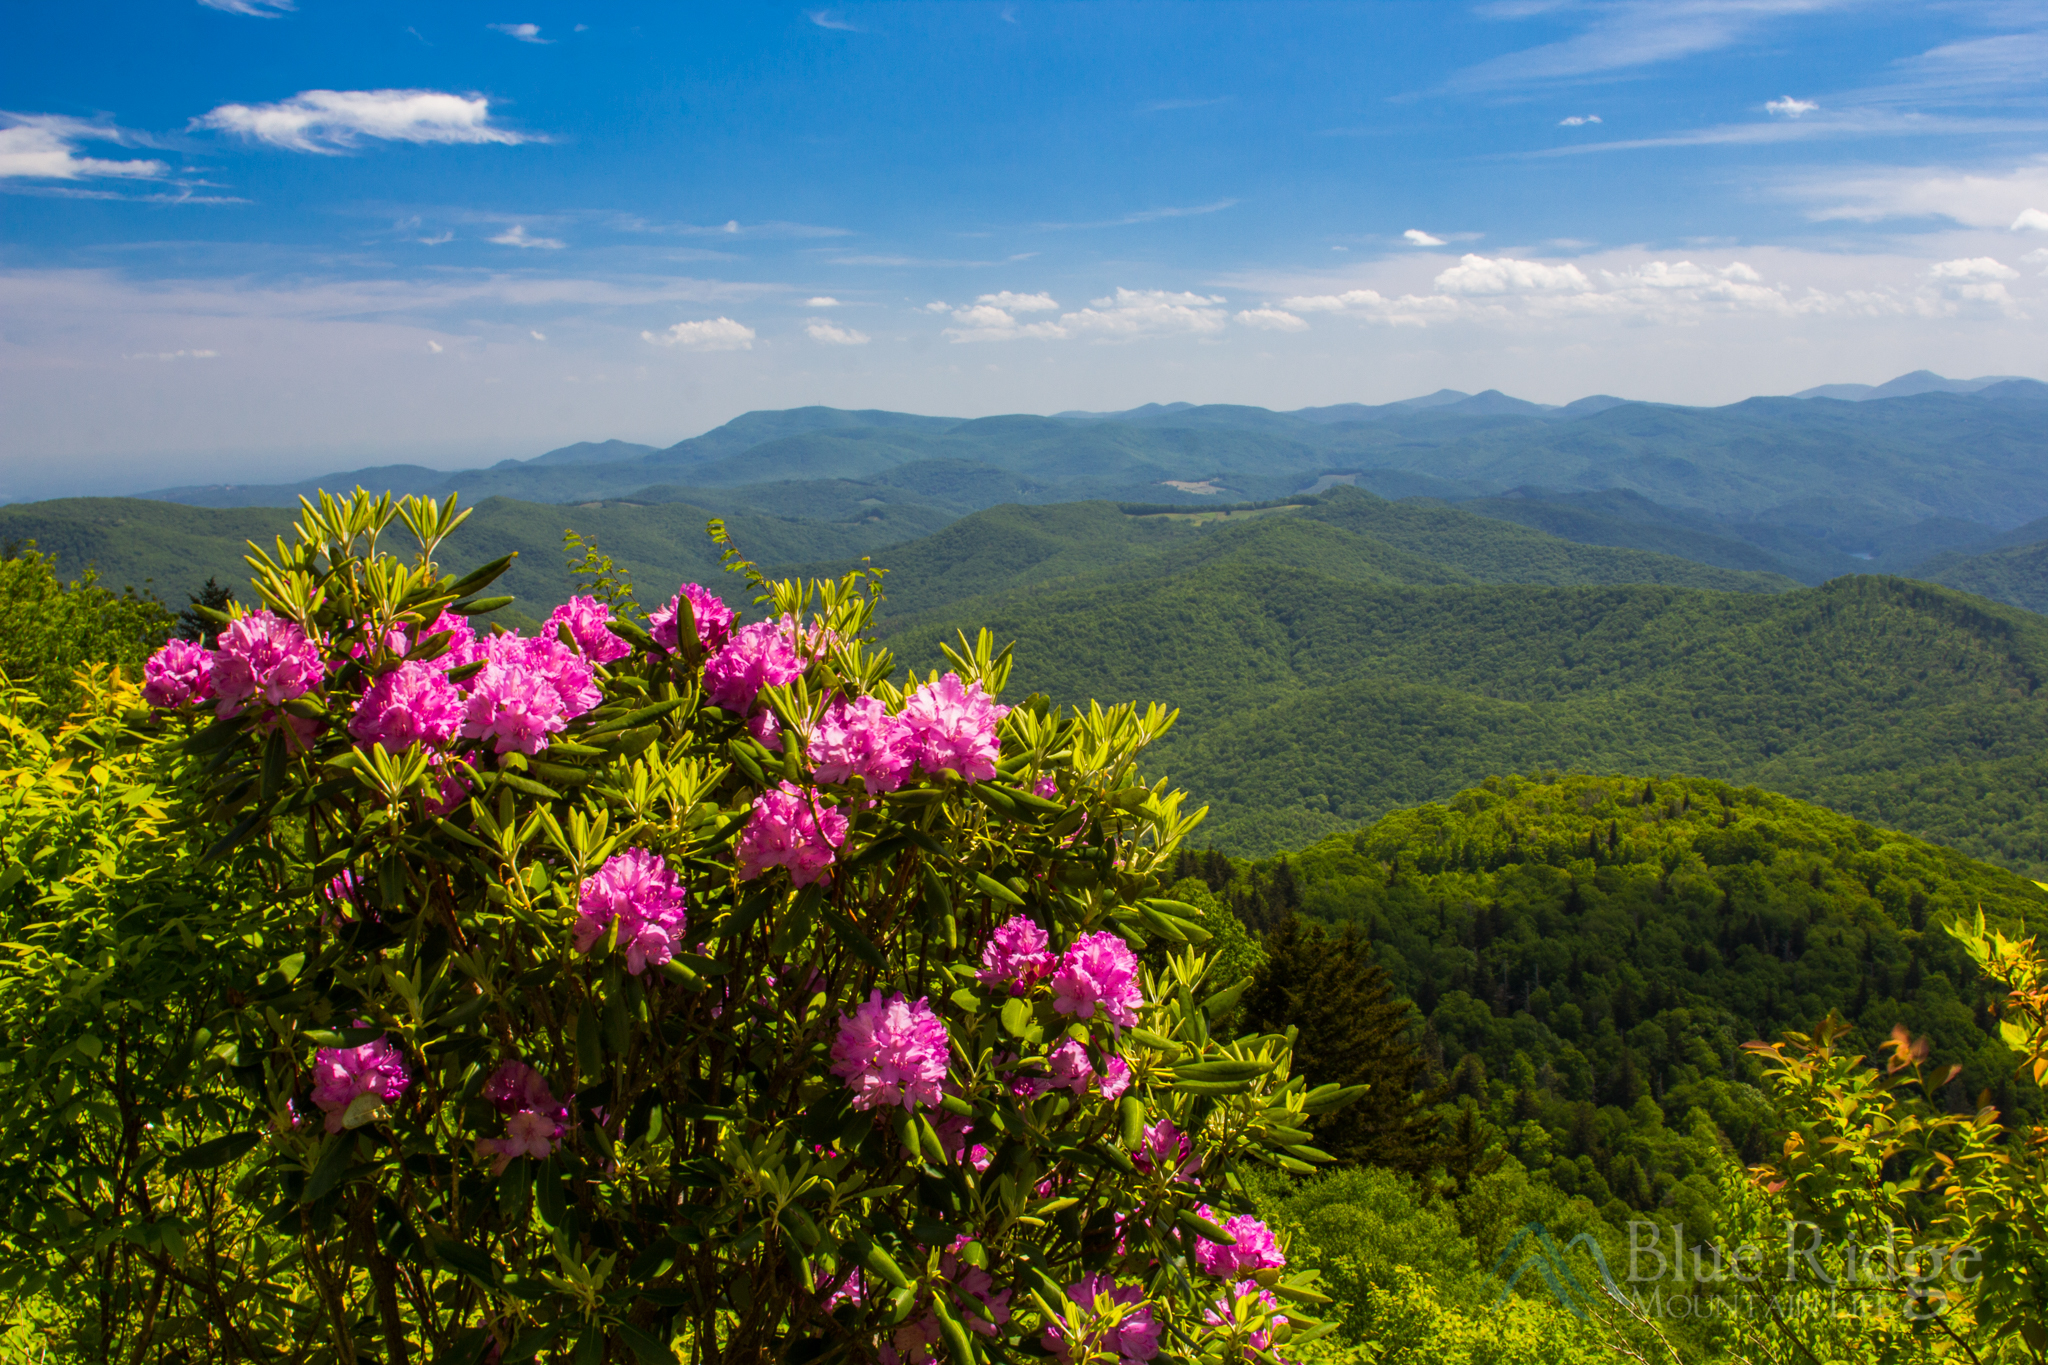 Rhododendron on the Blue Ridge Parkway